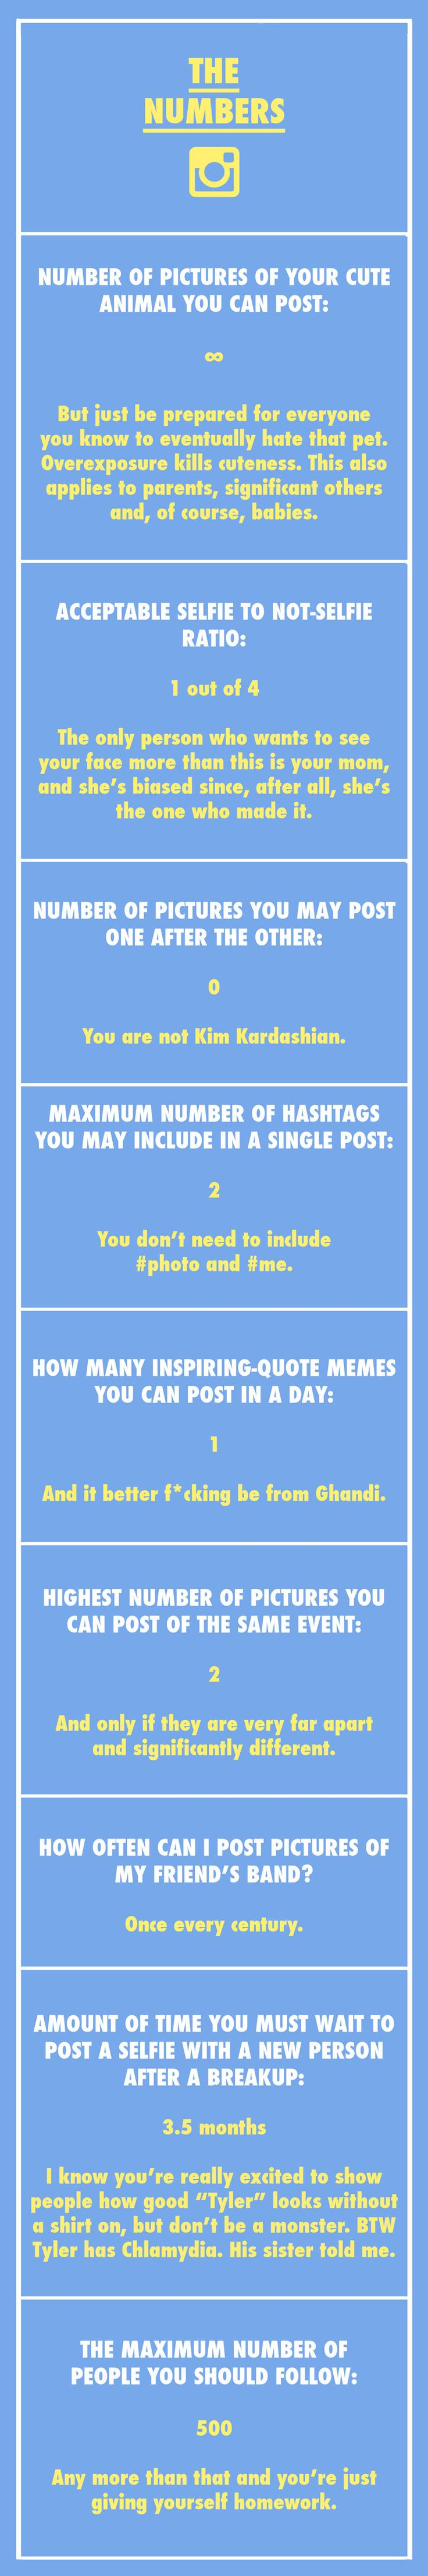 The Ultimate Instagram Etiquette Guide We Should All Live By (Photos)